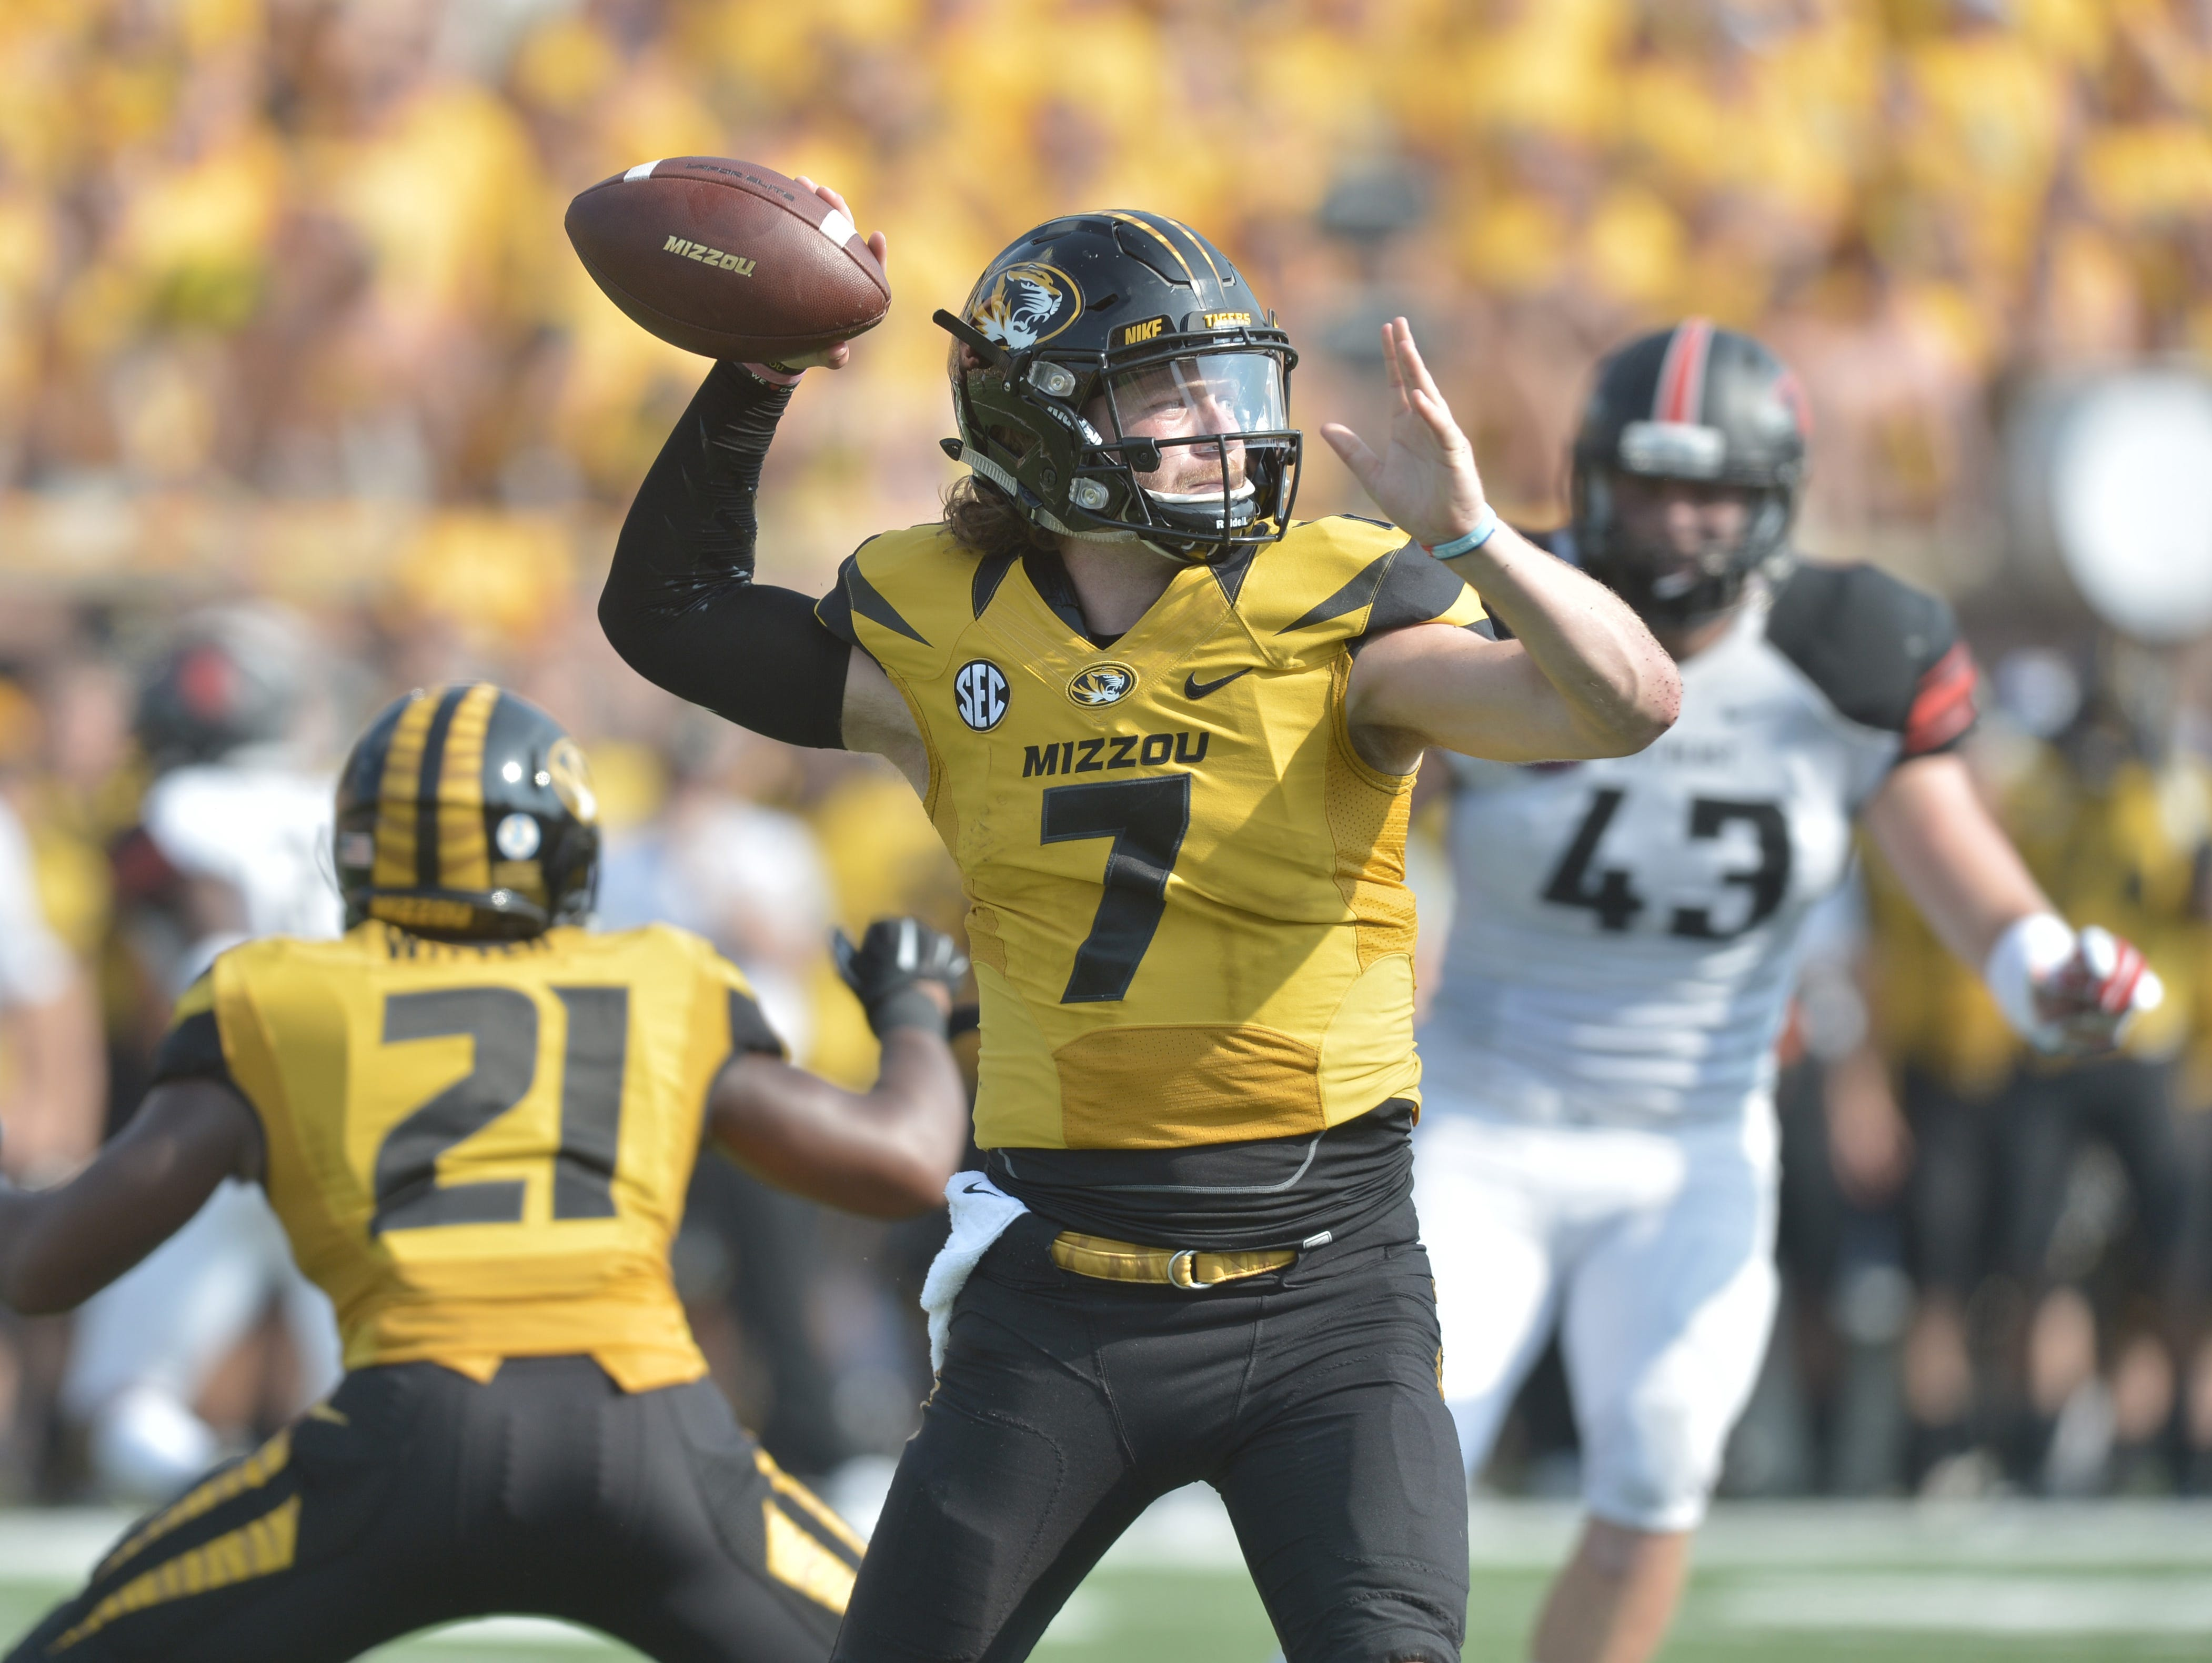 Things aren't going entirely smoothly for QB Maty Mauk and the Mizzou Tigers. But the road should get easier this week at Kentucky.